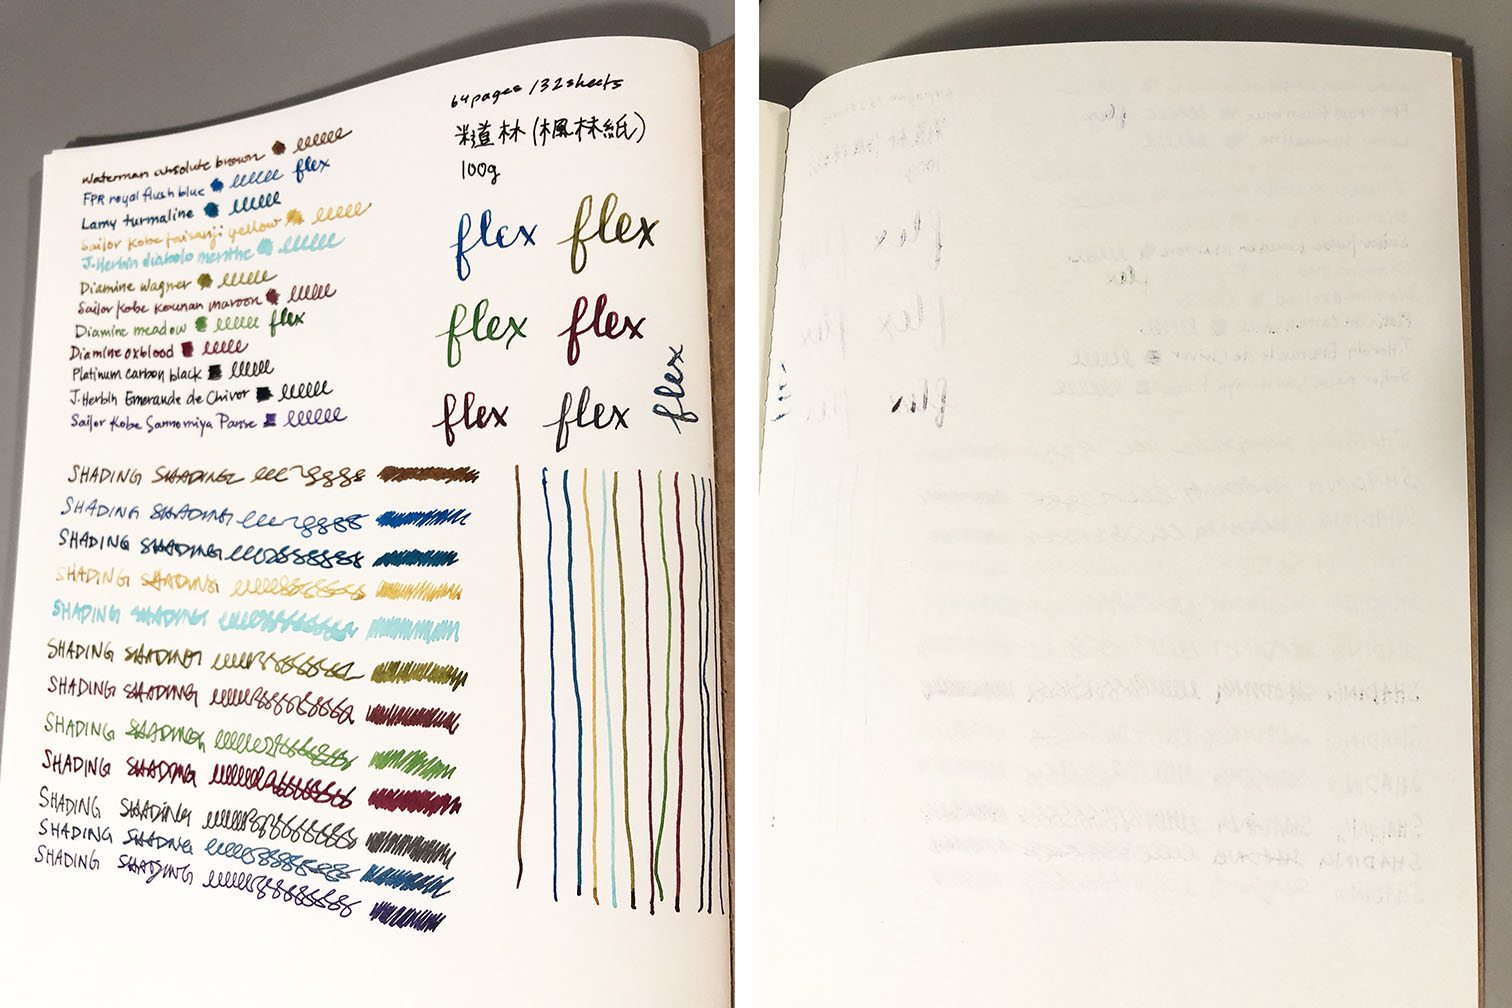 Photo collage of fountain pen ink tests on an interior page of the NTU cover. The left-image shows consecutive rows of handwriting, done in different coloured inks. The right-image shows the back-side of the page that was written to, to show that there is minmal ink bleedthrough (only when there was flex nib used, or certain inks used)